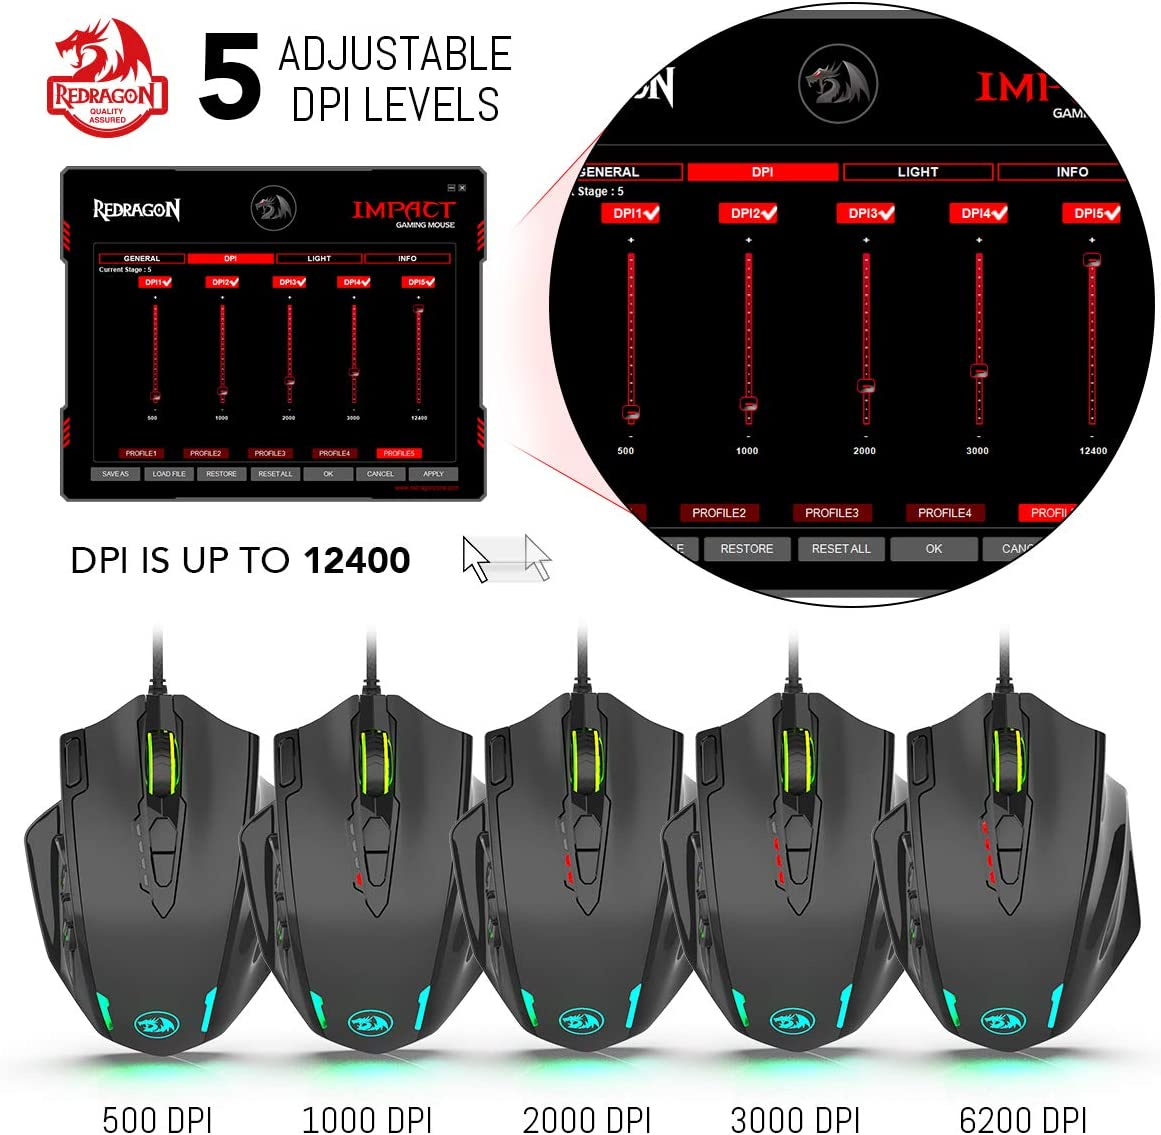 19 Programmable Mouse Buttons Redragon M908 Impact RGB LED MMO Mouse with Side Buttons Laser Wired Gaming Mouse with 12,400DPI High Precision